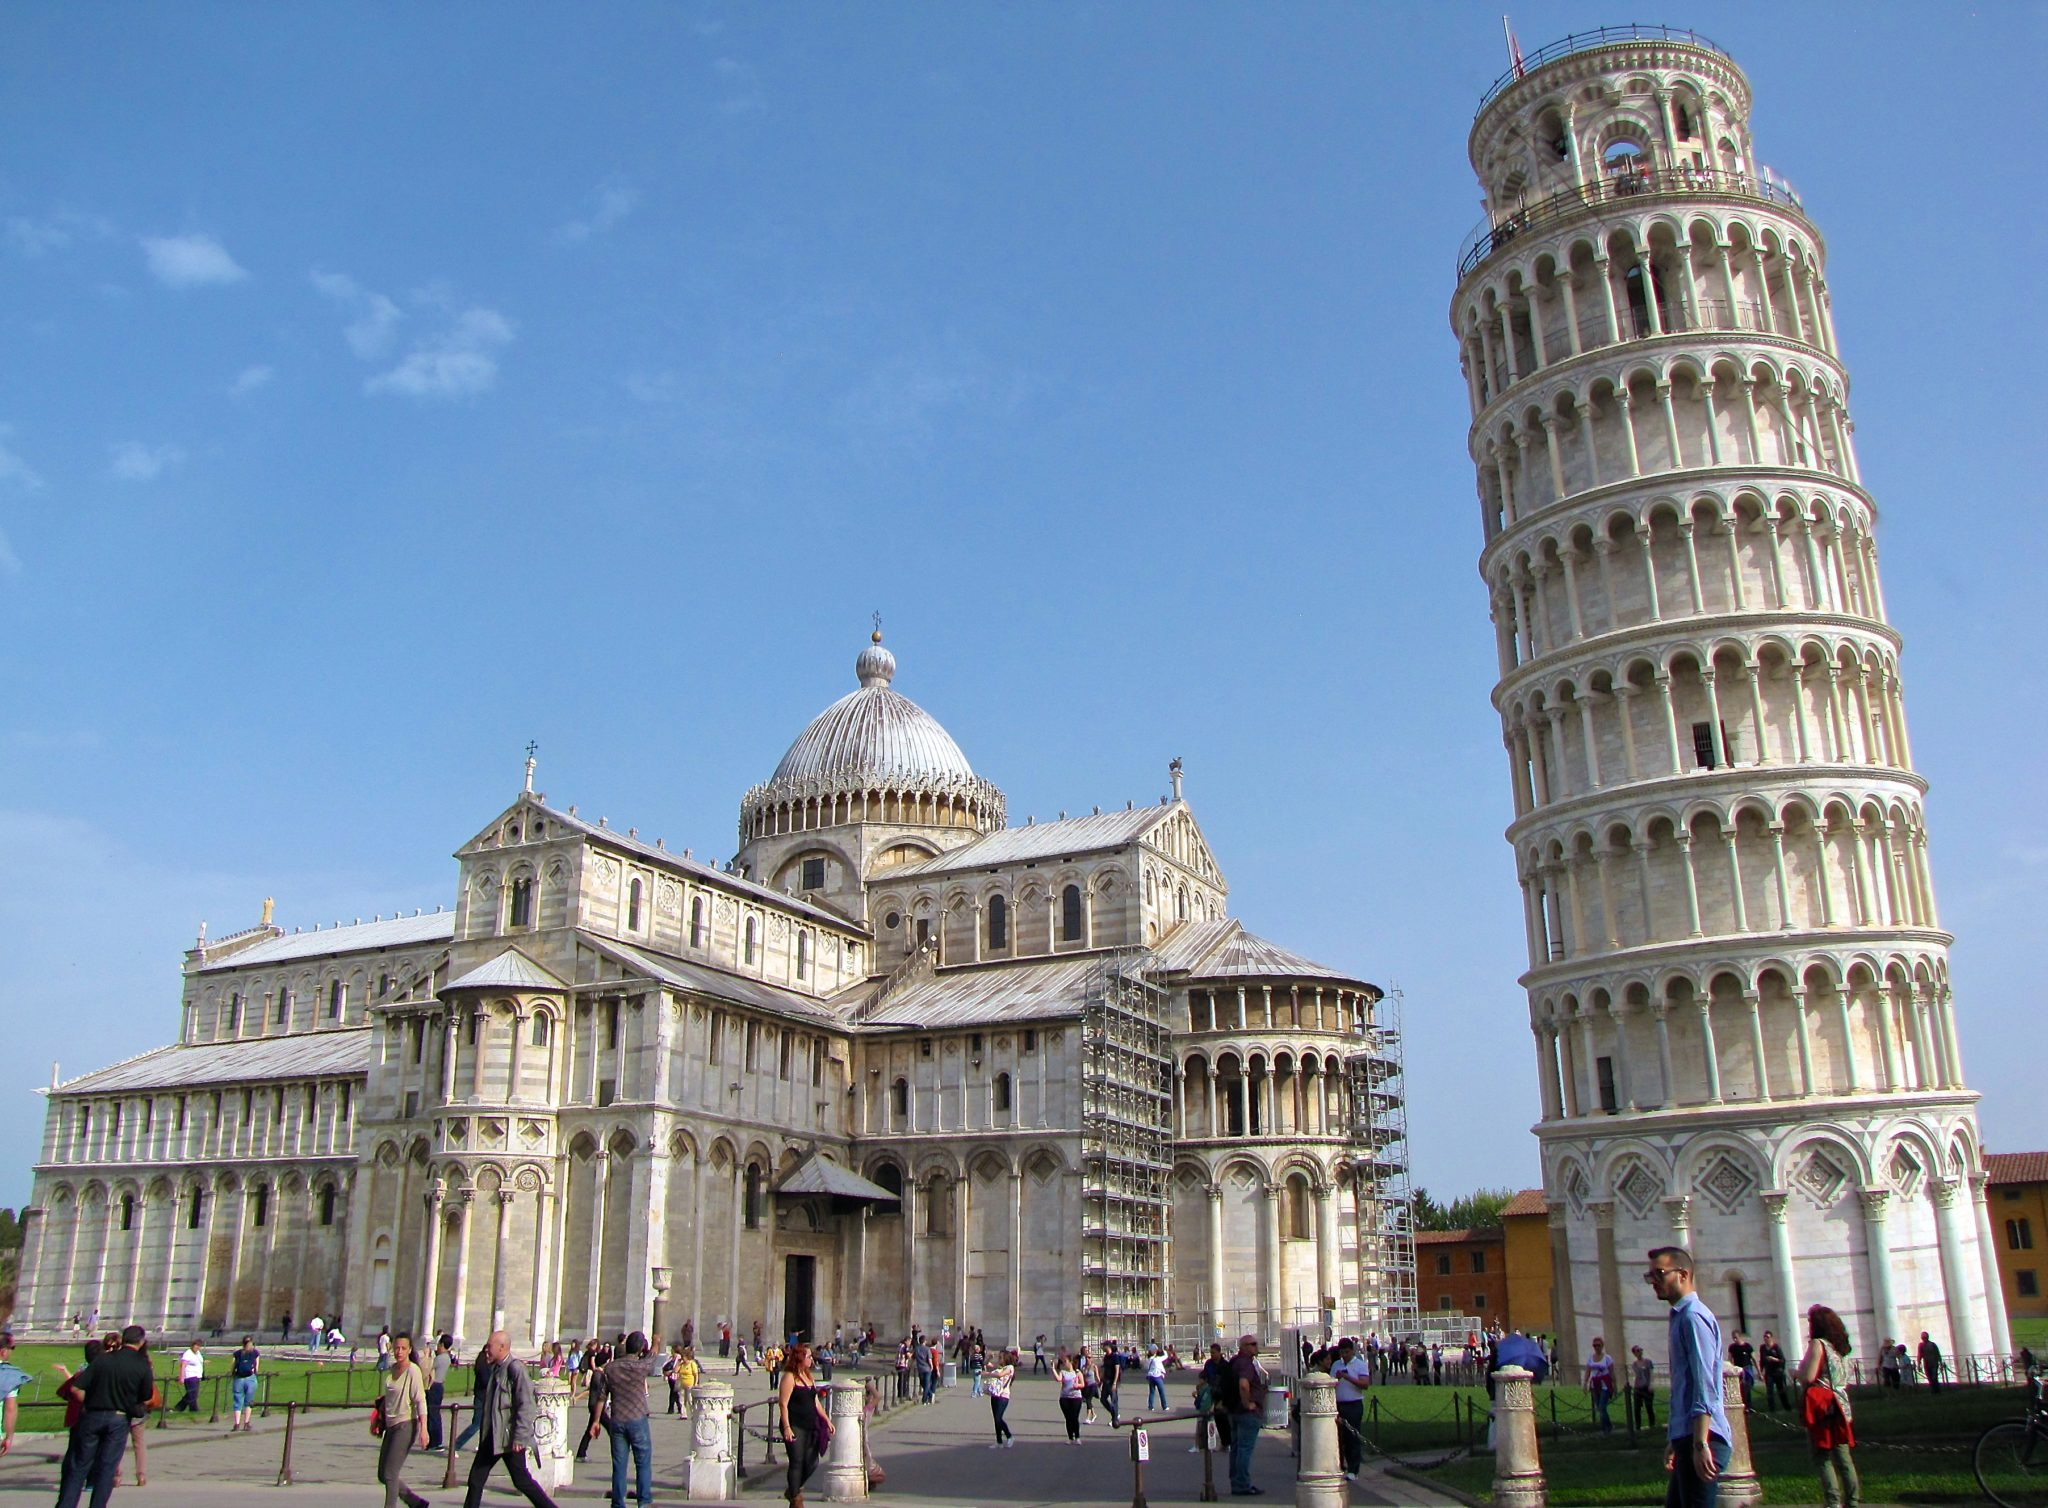 The Iconic Structures of Pisa